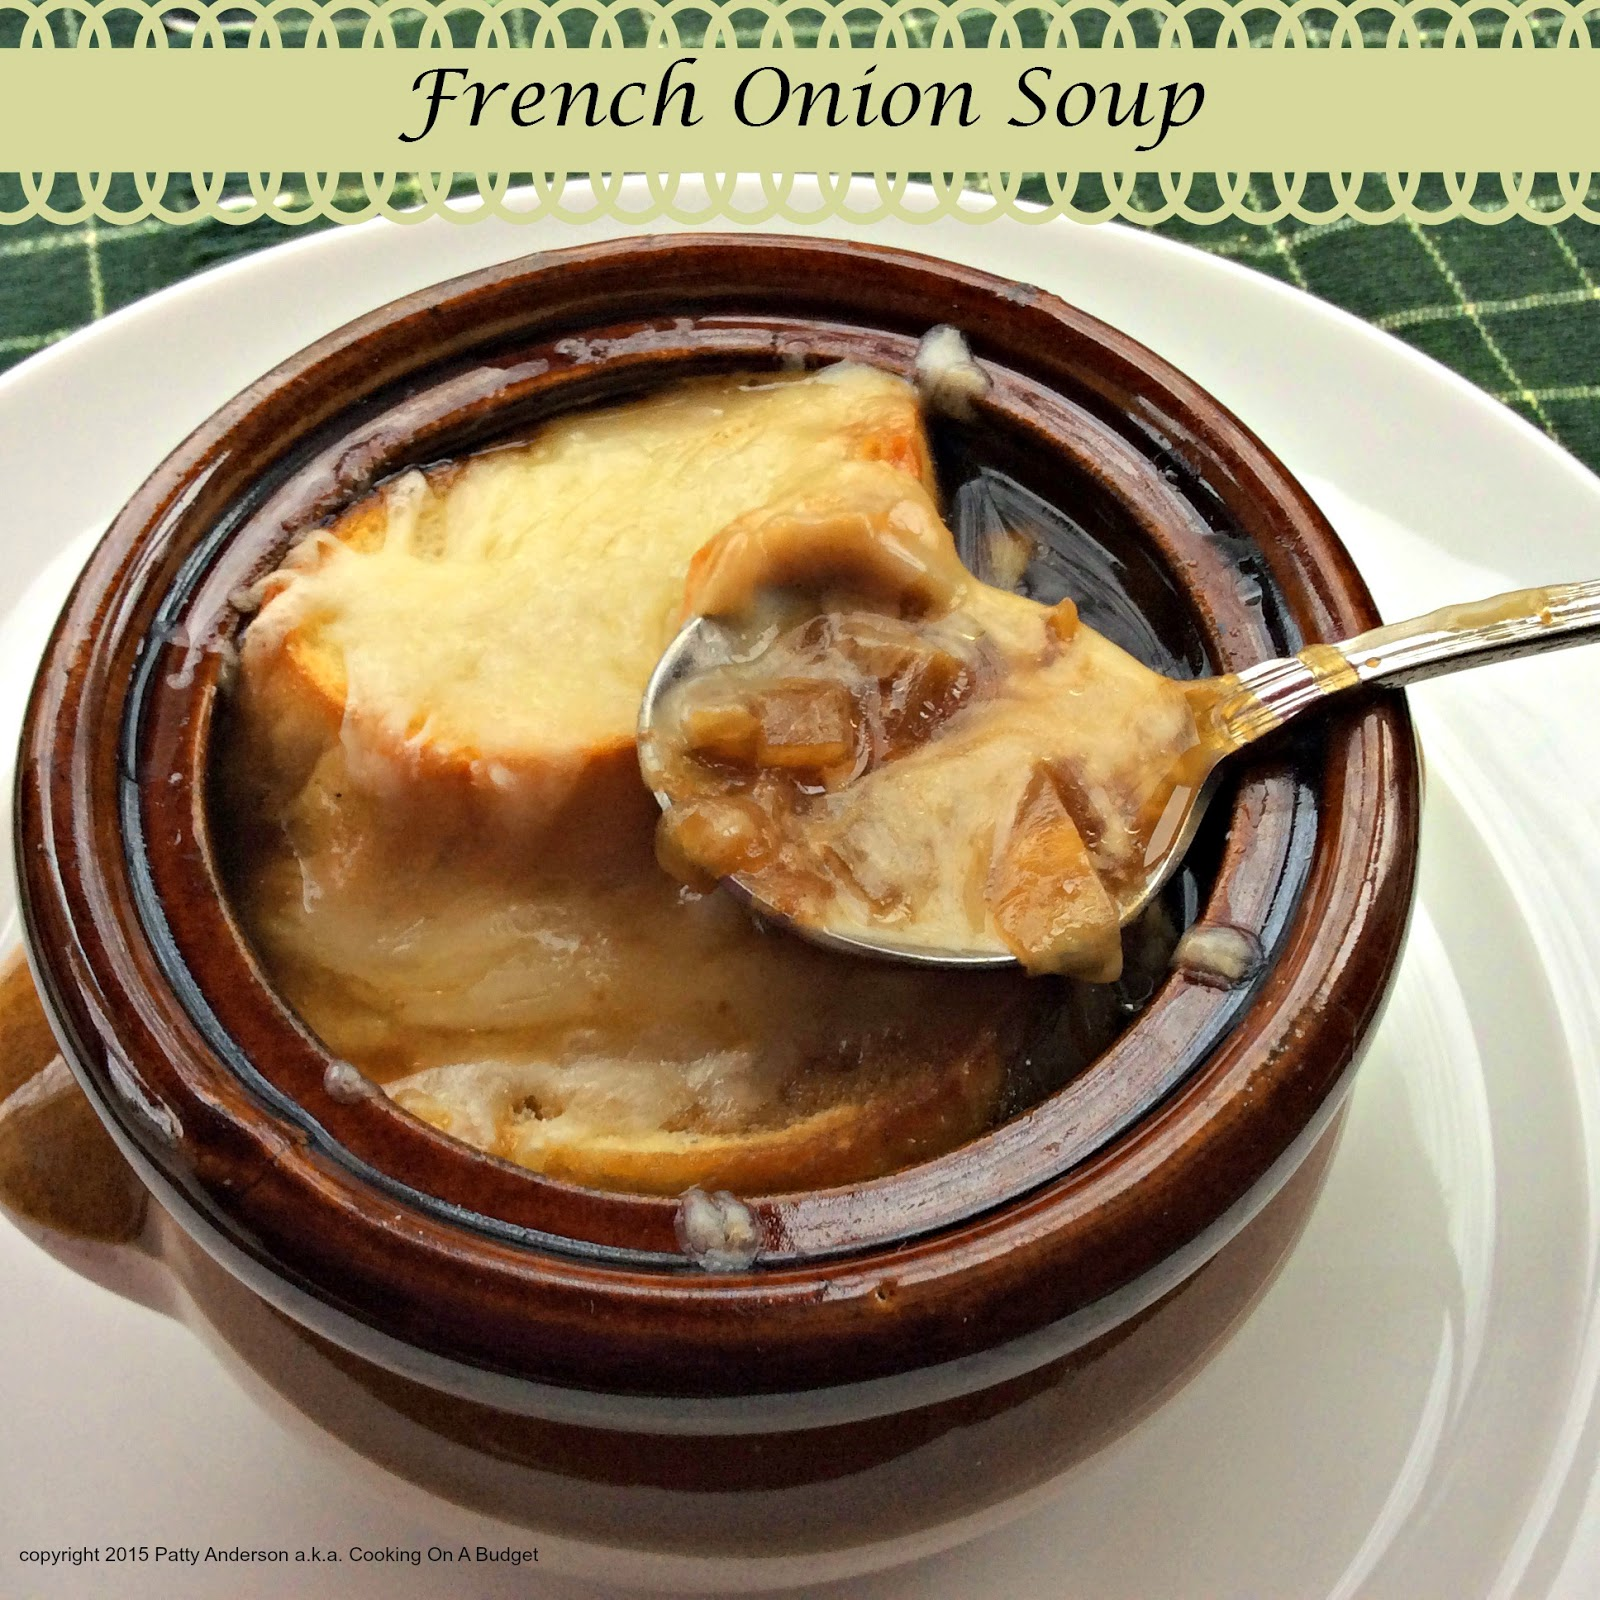 Cooking On A Budget: French Onion Soup